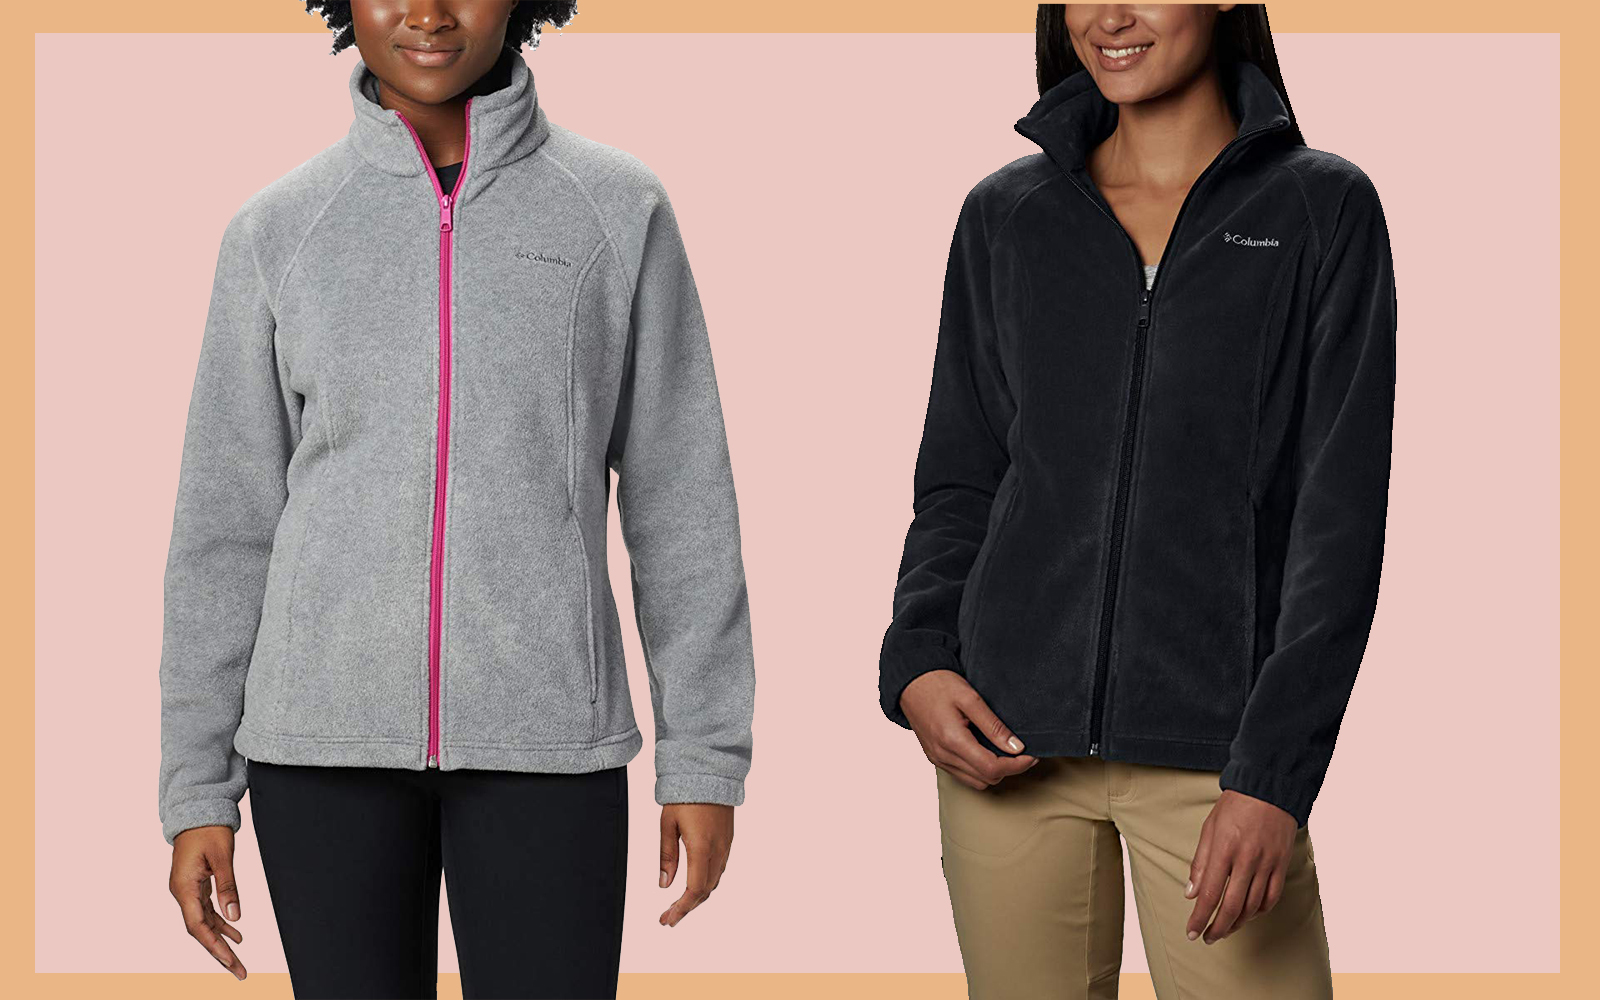 Amazon Shoppers Love This $24 Columbia Fleece Jacket